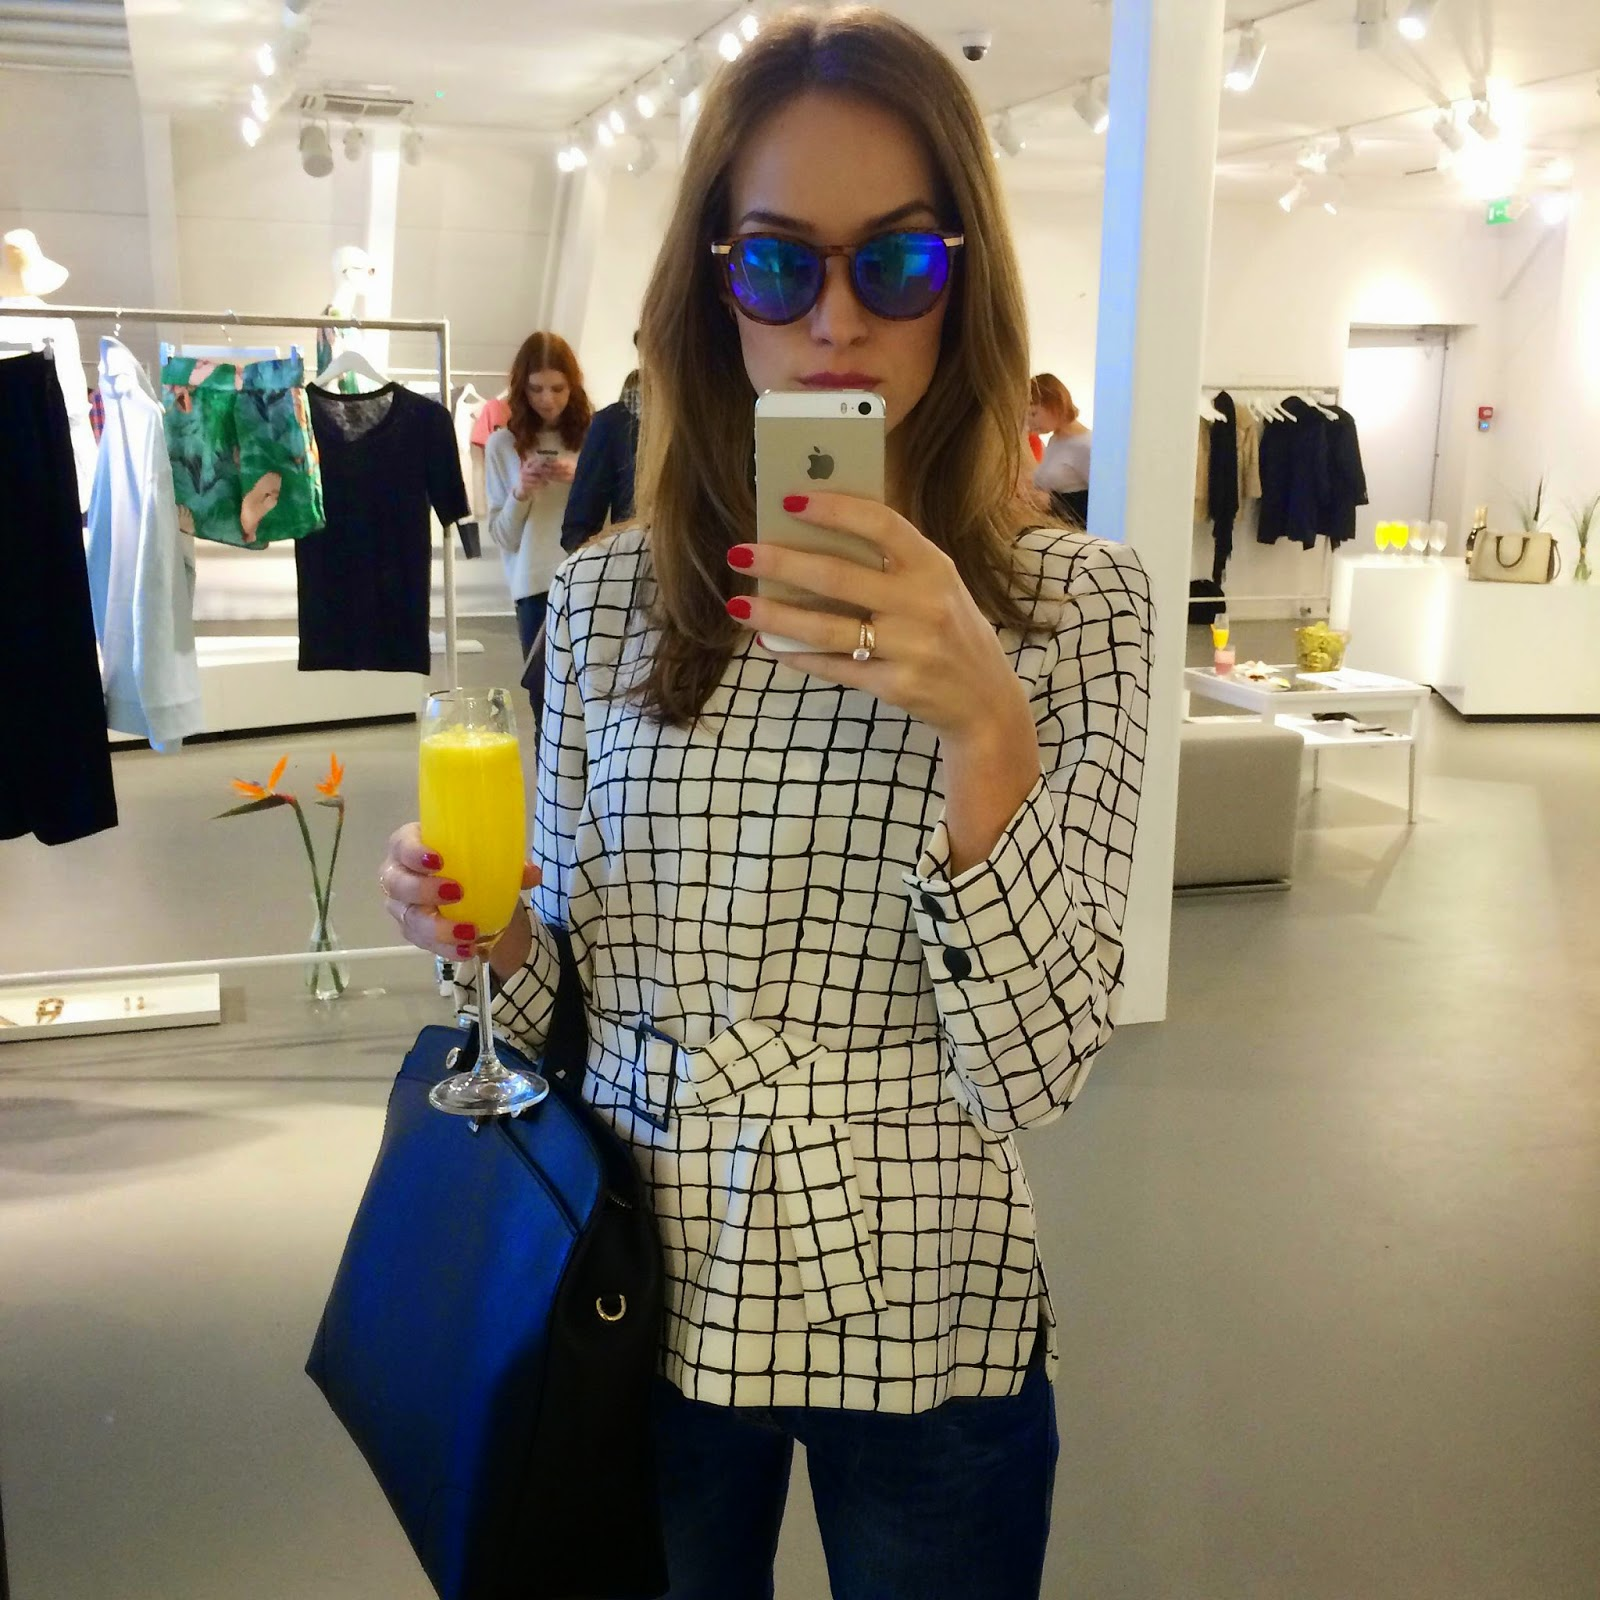 zara-square-prin-top-furla-bag-guess-jeans-hm-sunglasses